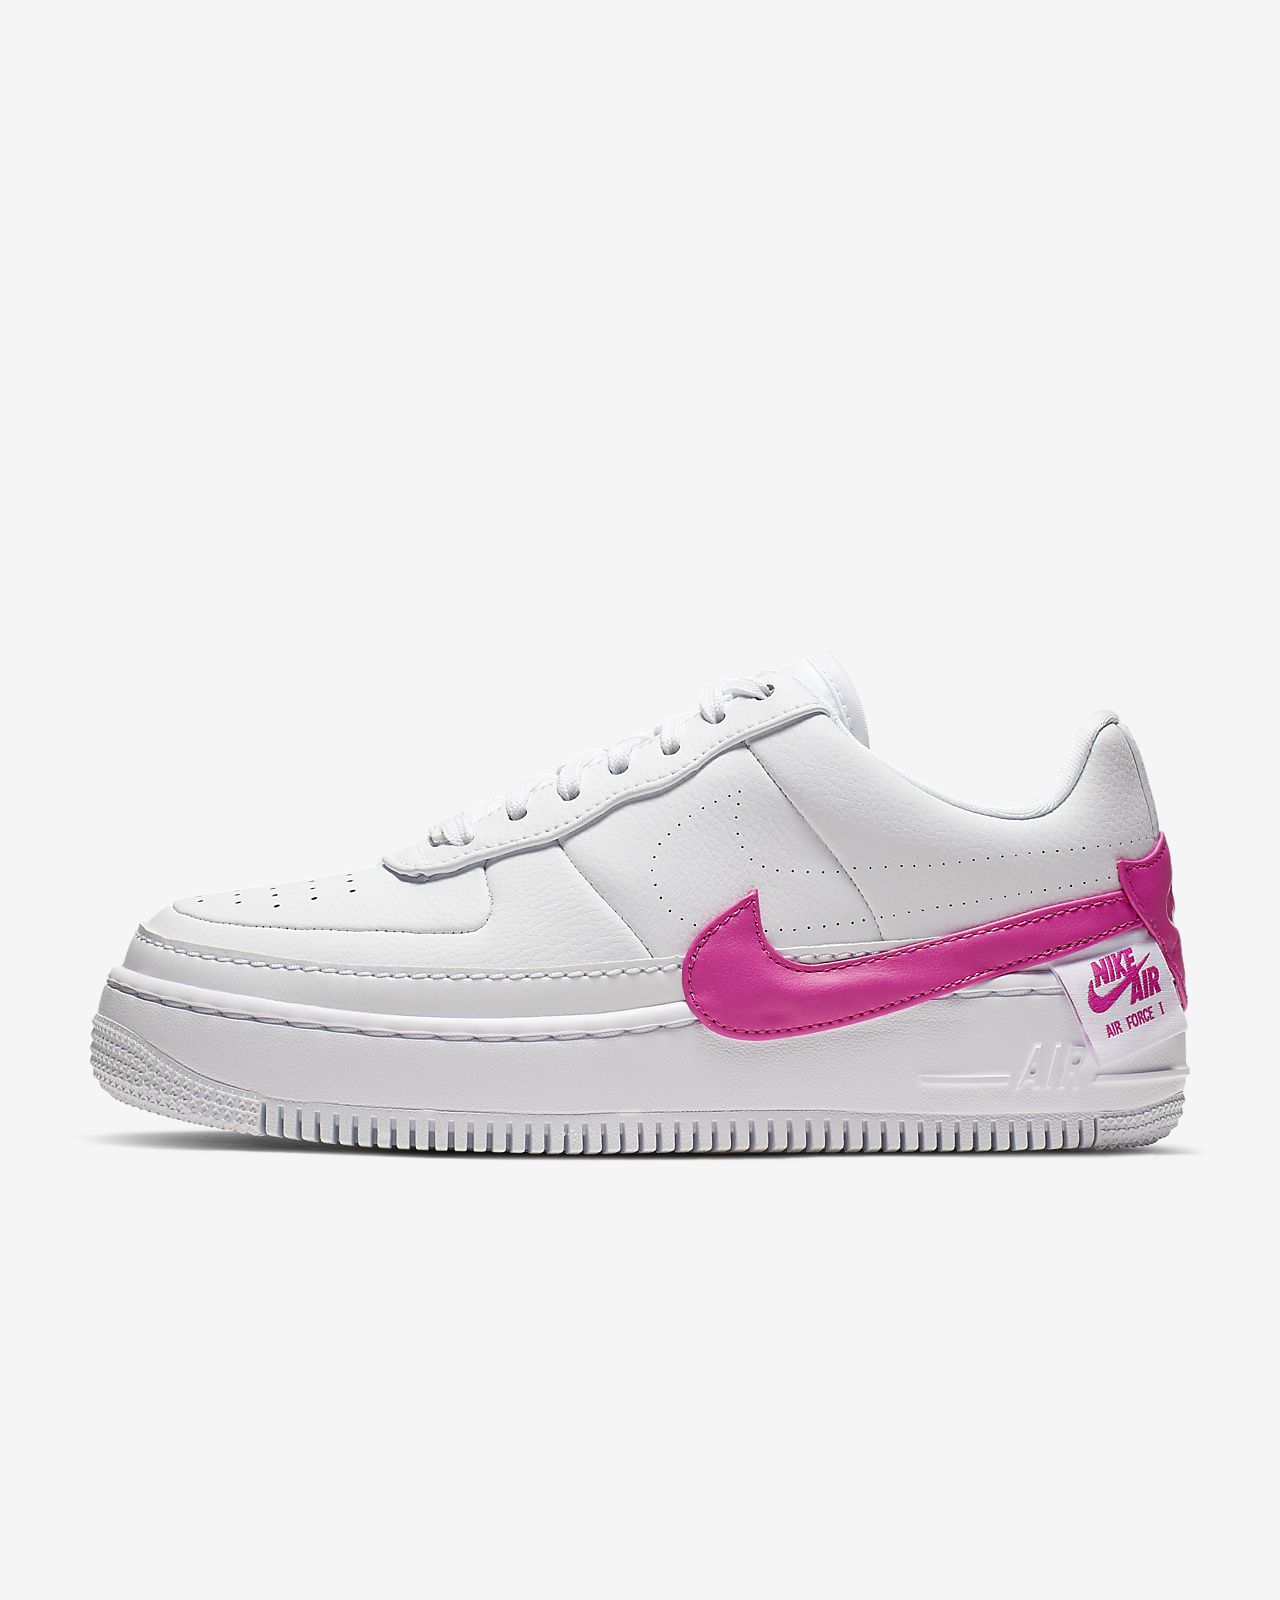 8f8990b3c9f Nike Air Force 1 Jester XX Shoe. Nike.com CA